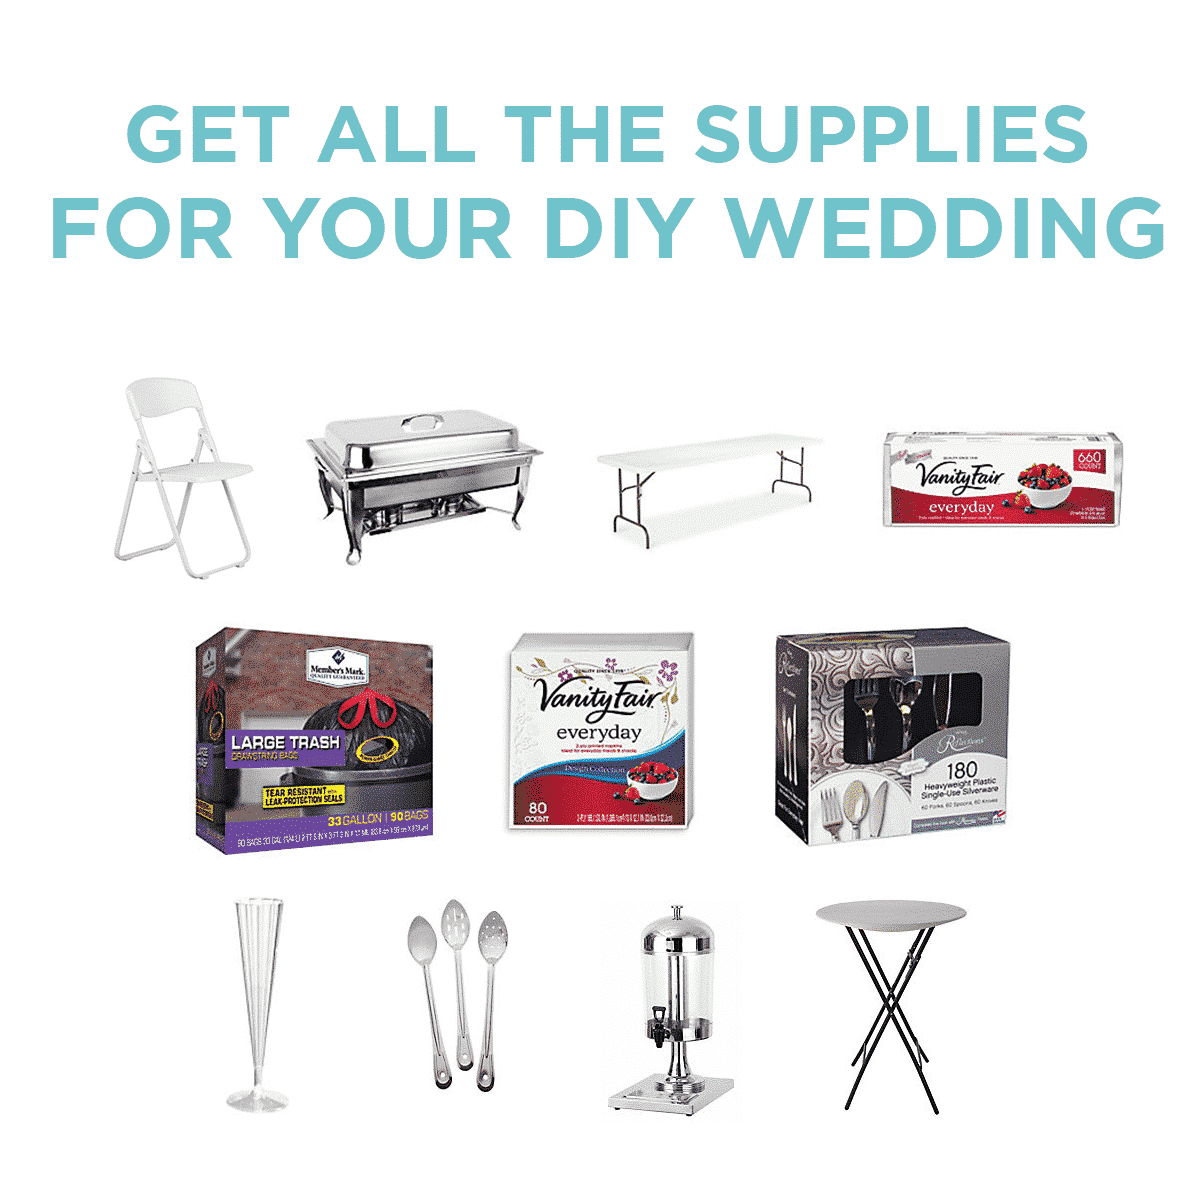 Get all the supplies you need for your DIY wedding at Sam's Club